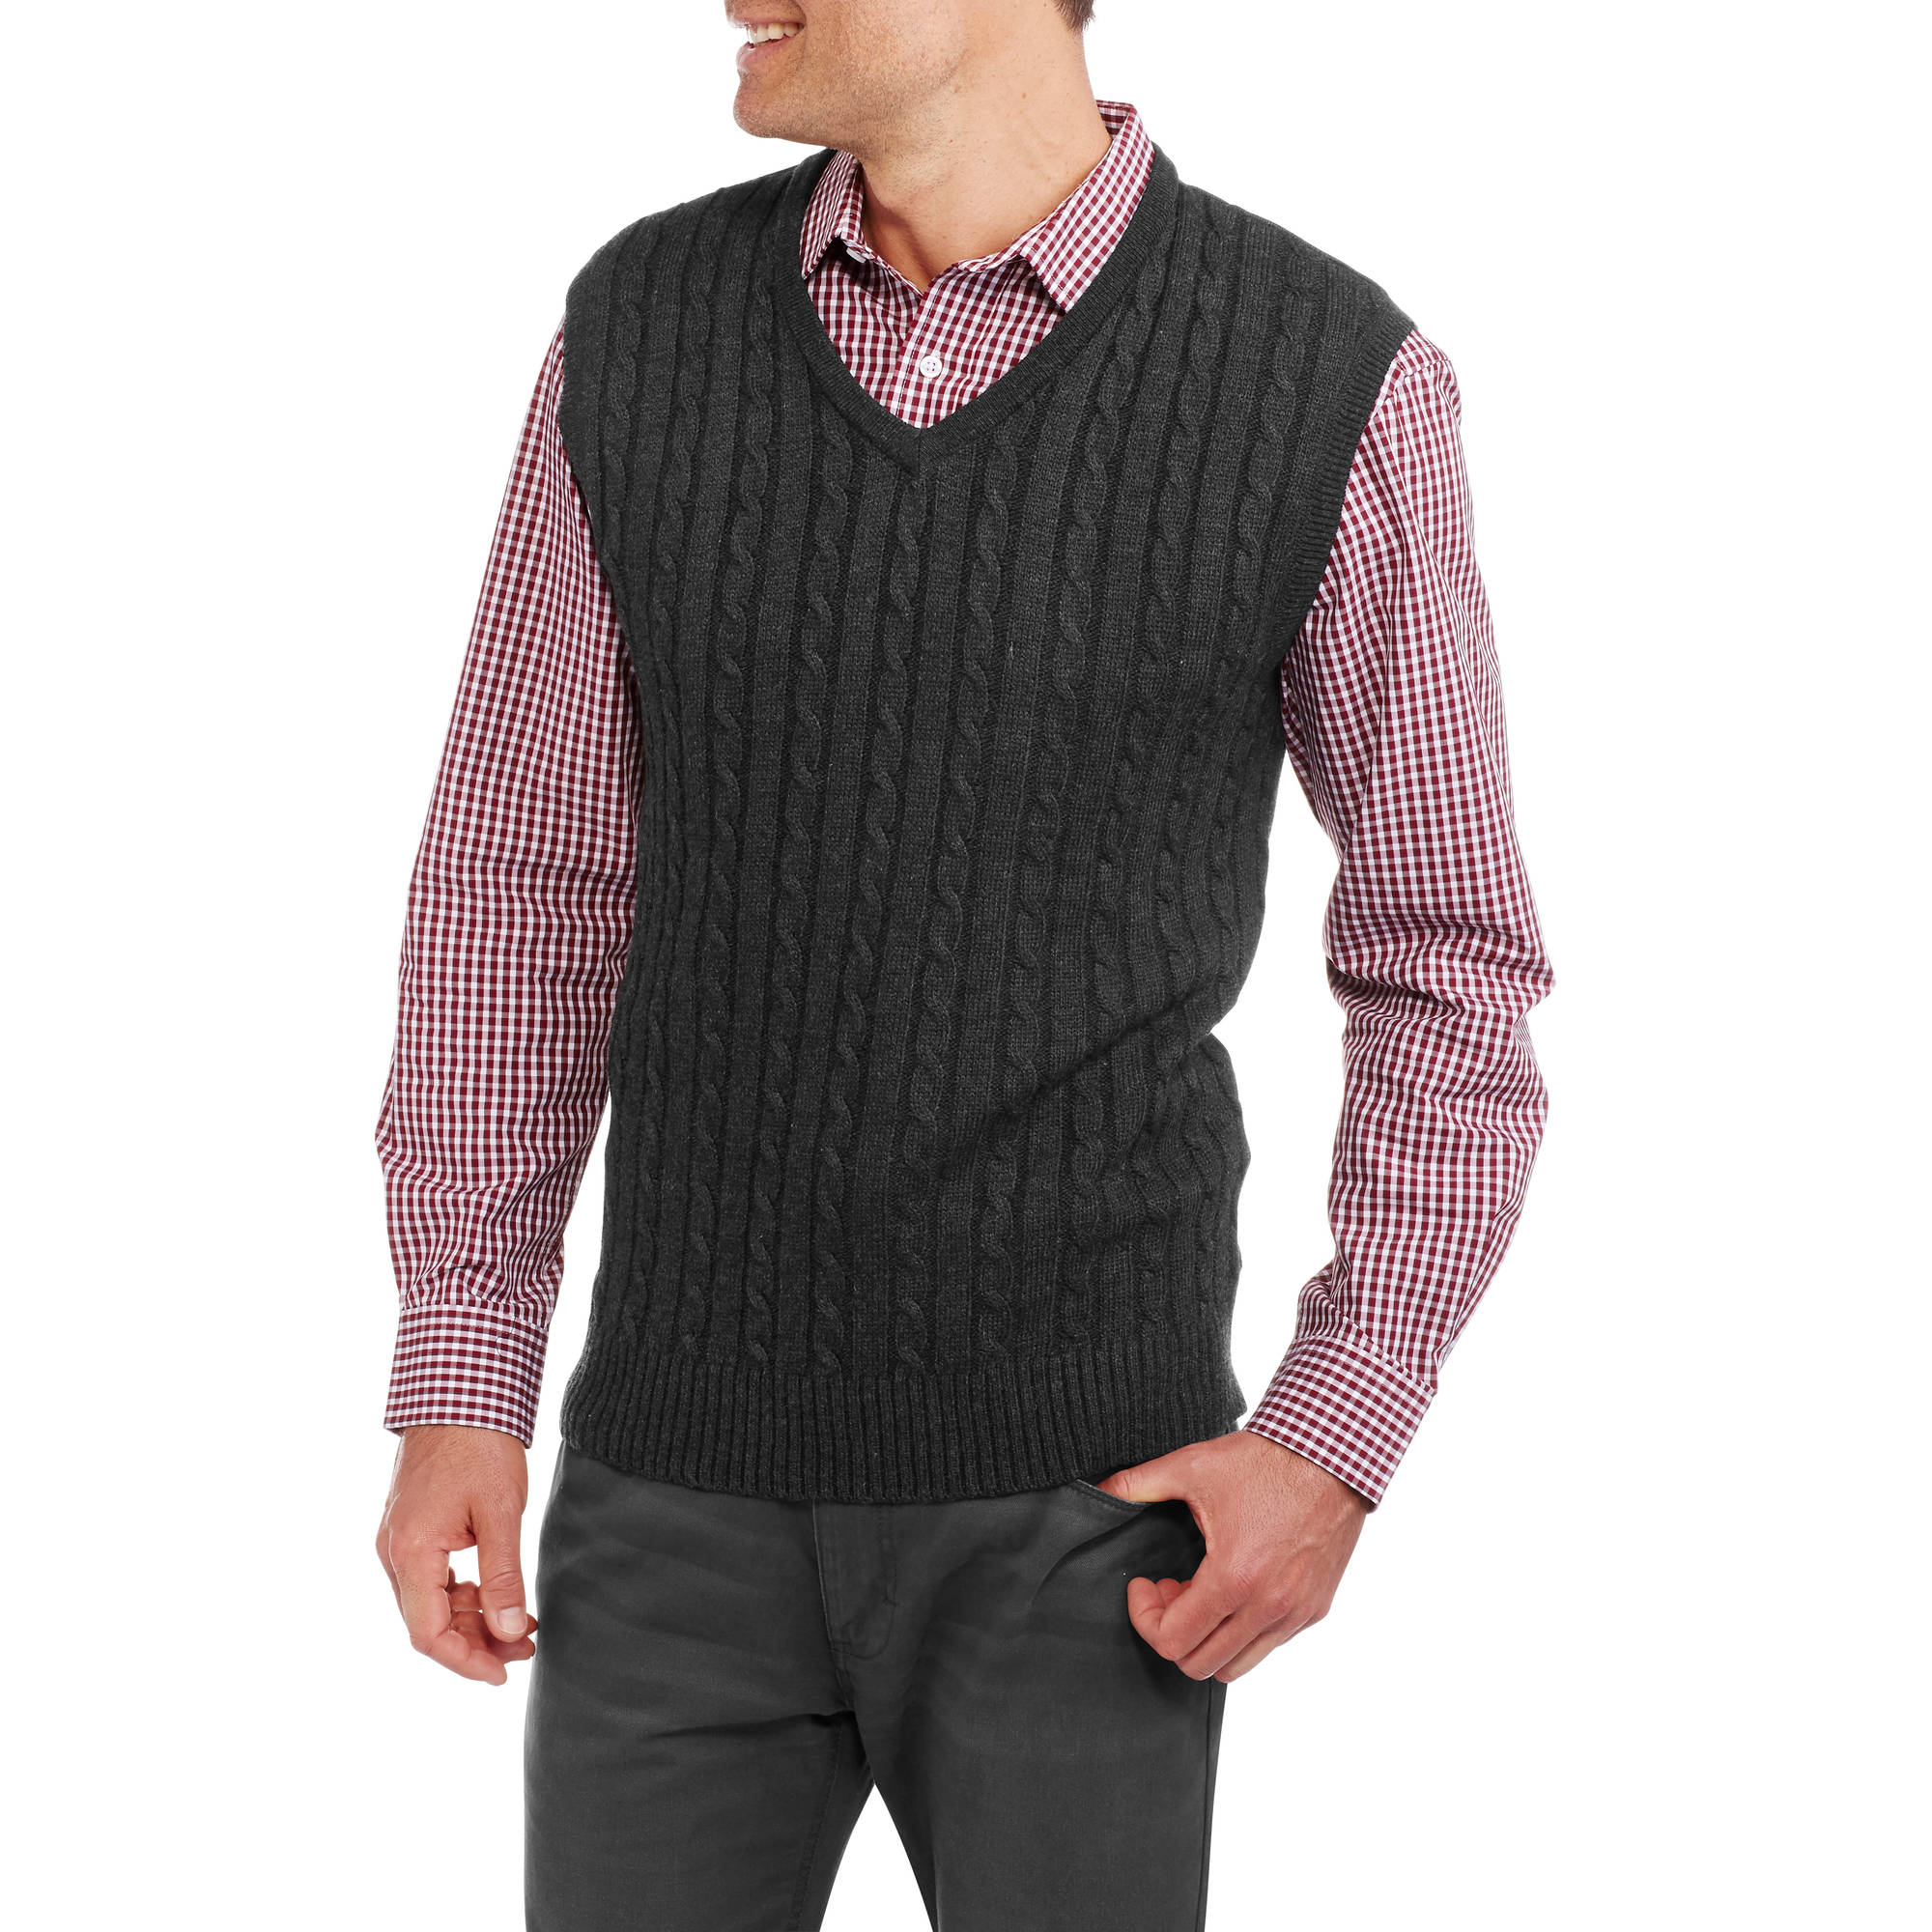 Sahara Club Men's Cable Knit Sweater Vest